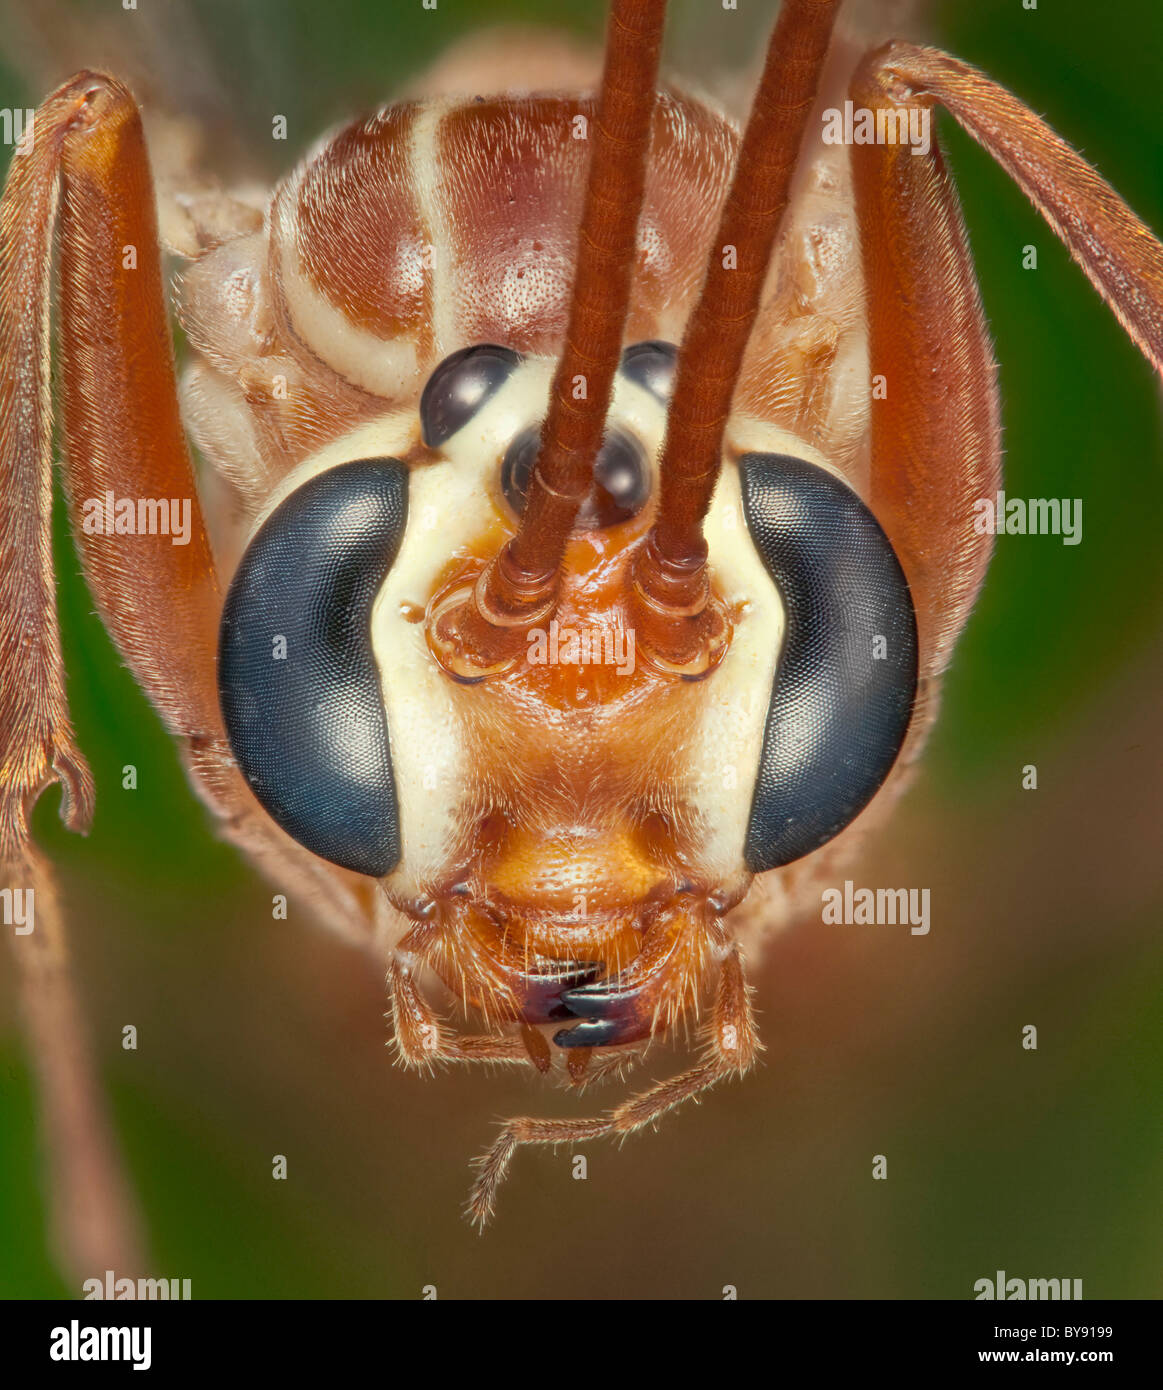 Ophion obscuratus parasitoid wasp, head close-up showing compound and simple eyes - Stock Image